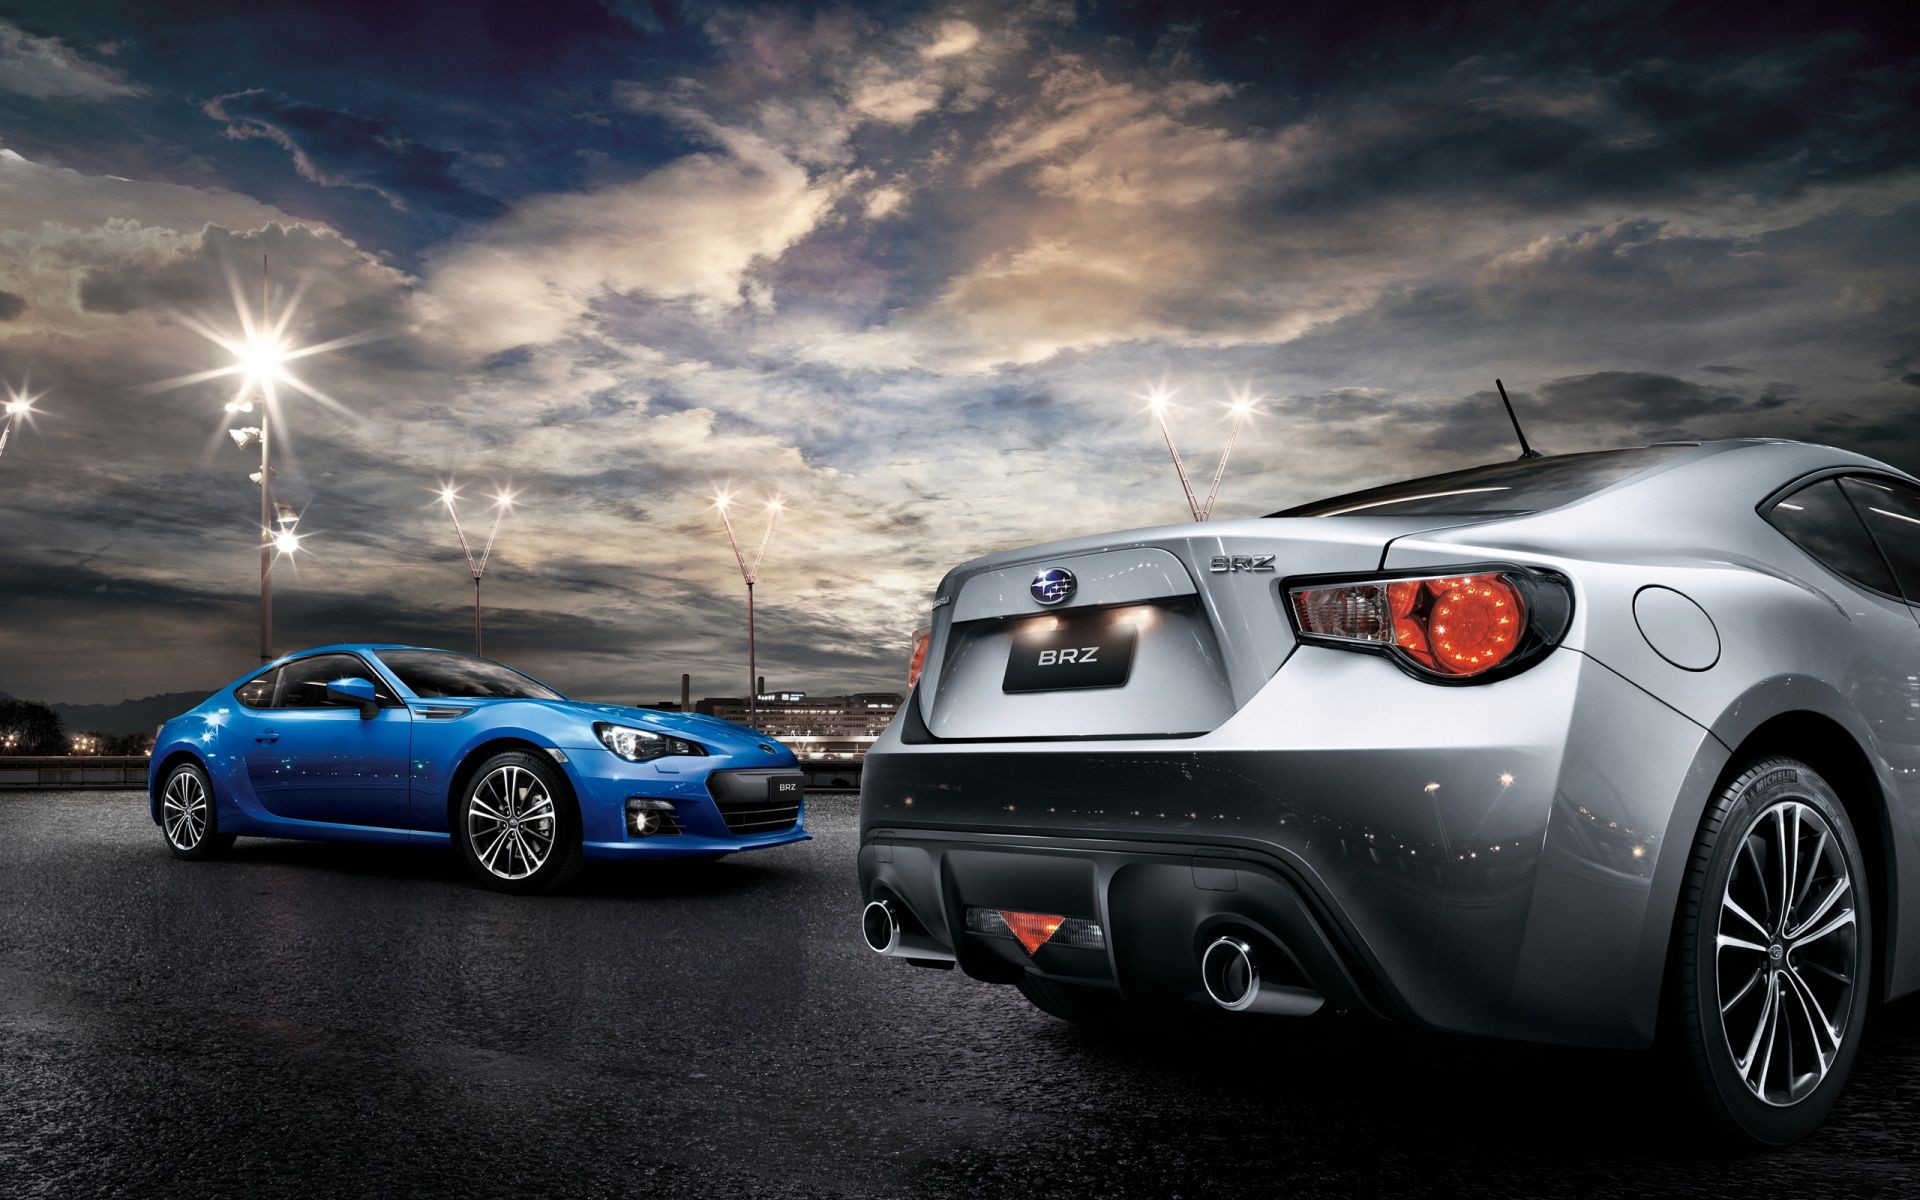 Brz is raw subaru browse the subaru brz photo gallery and discover why so many choose to drive a subaru